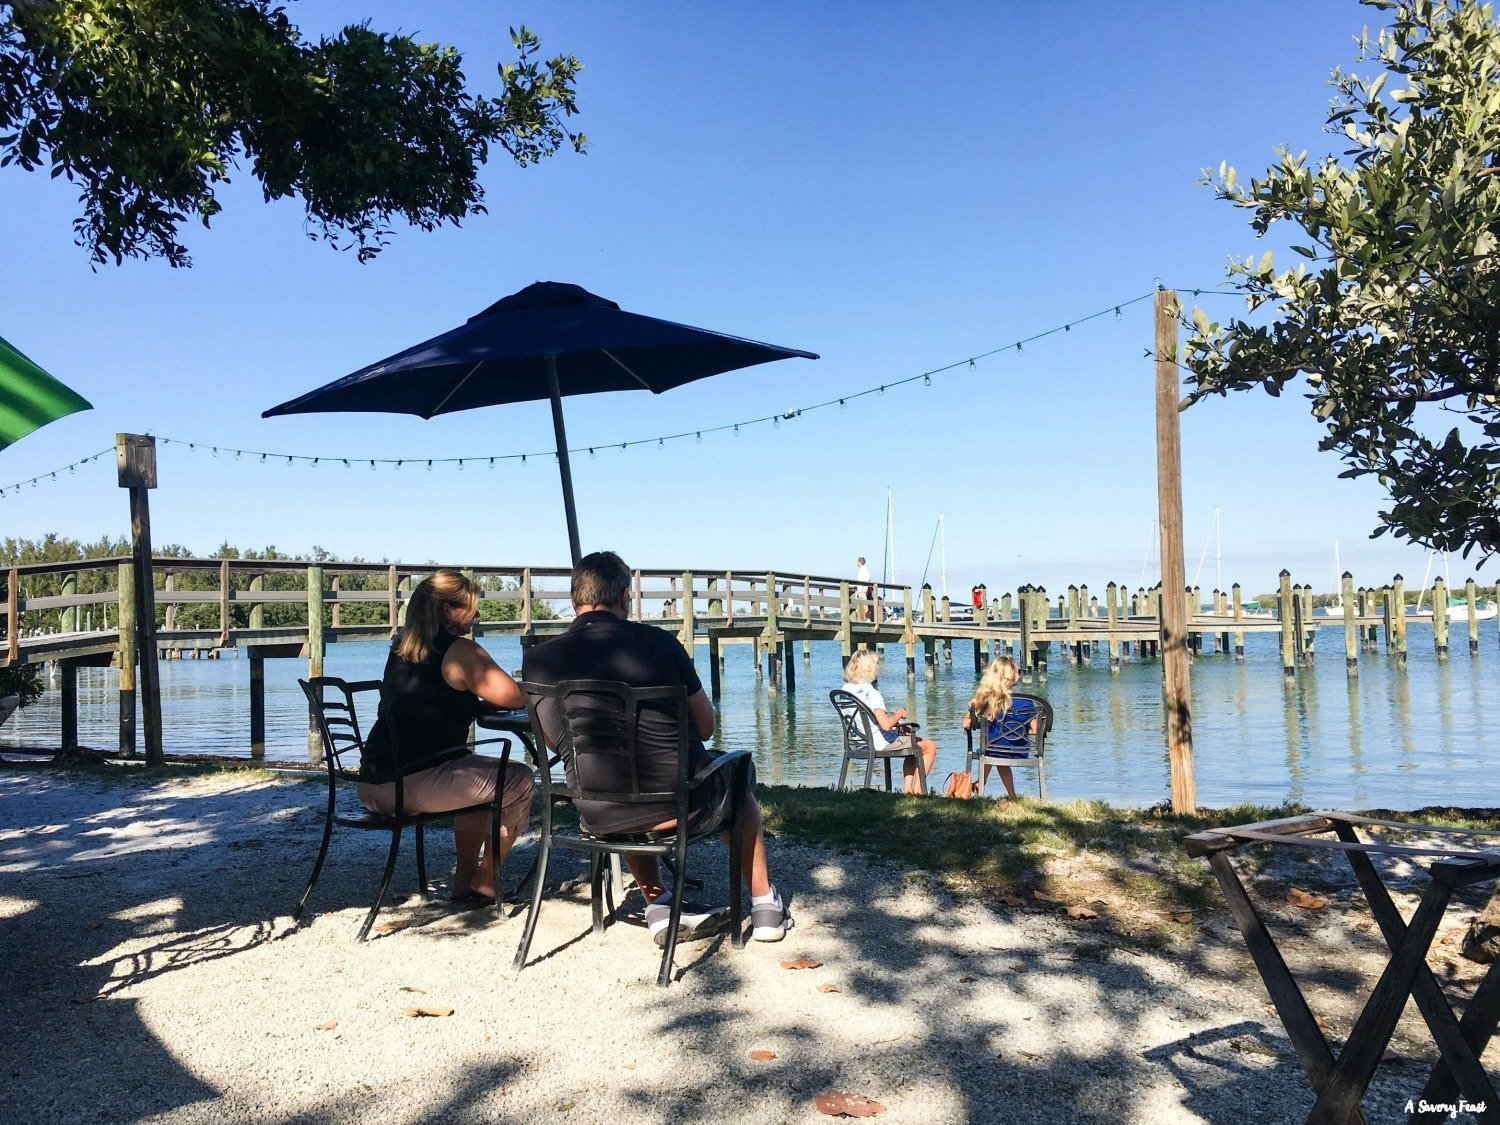 Waterside dining at Mar Vista in Longboat Key, Florida